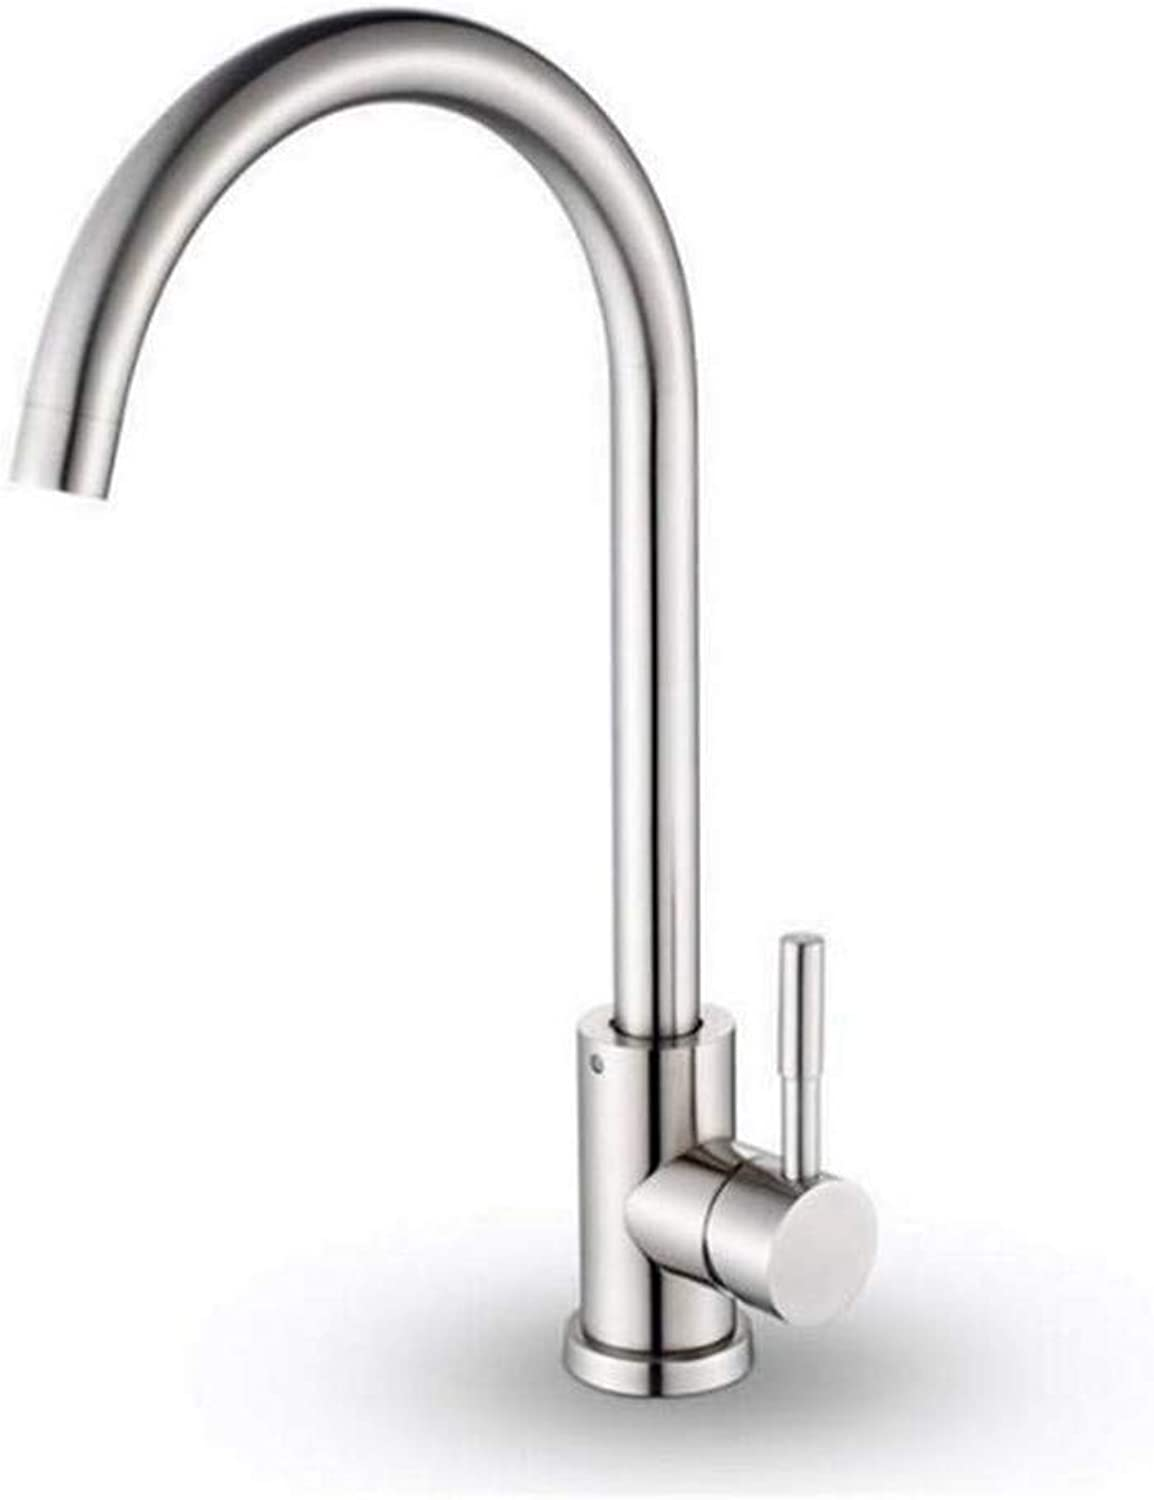 Hot and Cold Vintage Brass Bathroom Kitchen Taps Kitchen Faucet Stainless Steel Cold-Hot Dual-Purpose Single-Hole Faucet